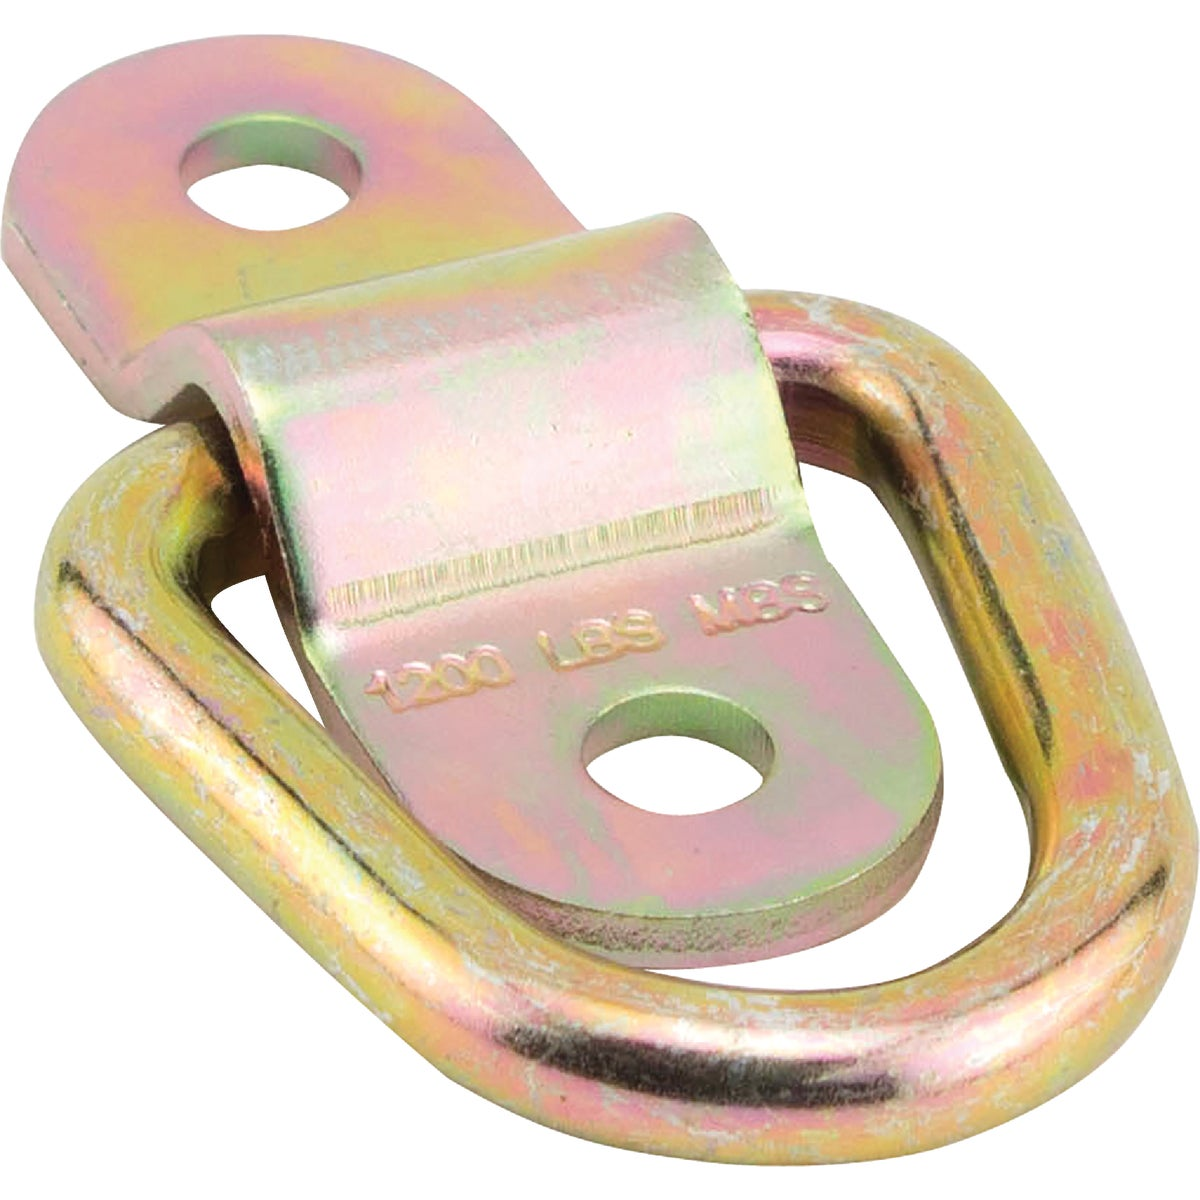 TRK/TRAILER RING ANCHOR - 09108 by Erickson Mfg Ltd